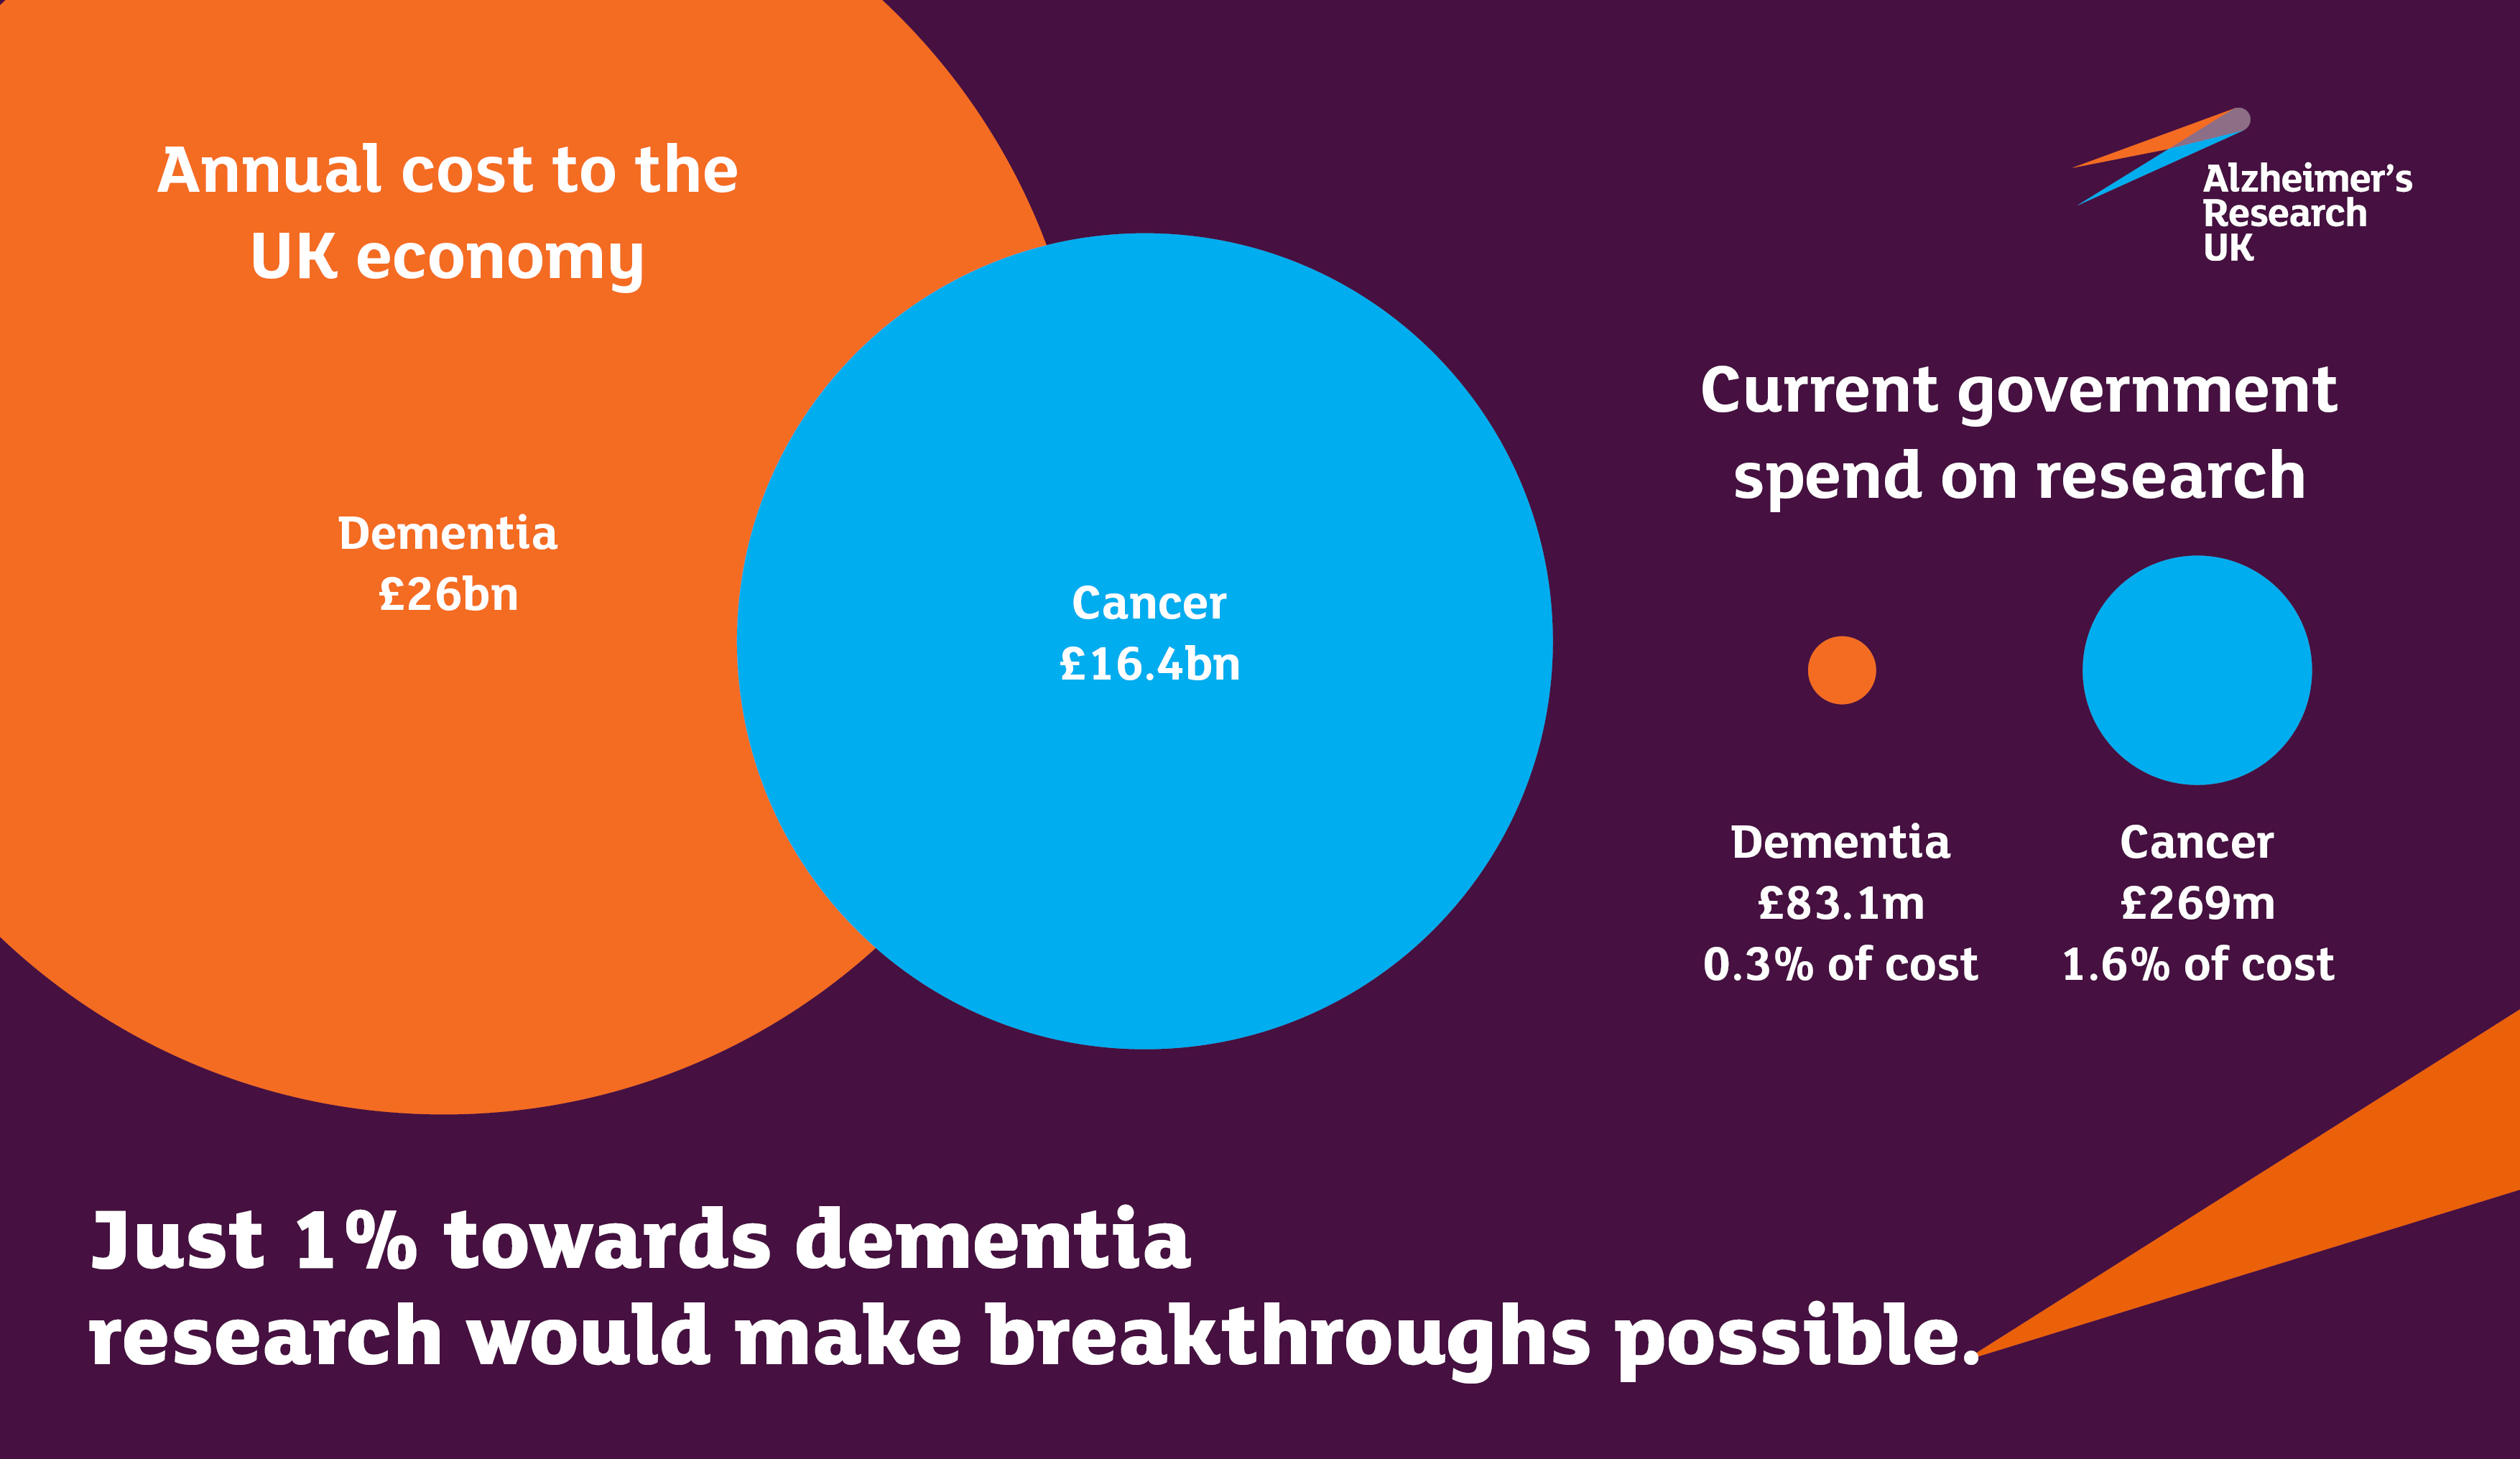 ... dementia research, an equivalent of 0.3% of the £26bn annual cost of the condition to the UK economy. In comparison, cancer research is funded at 1.6% ...